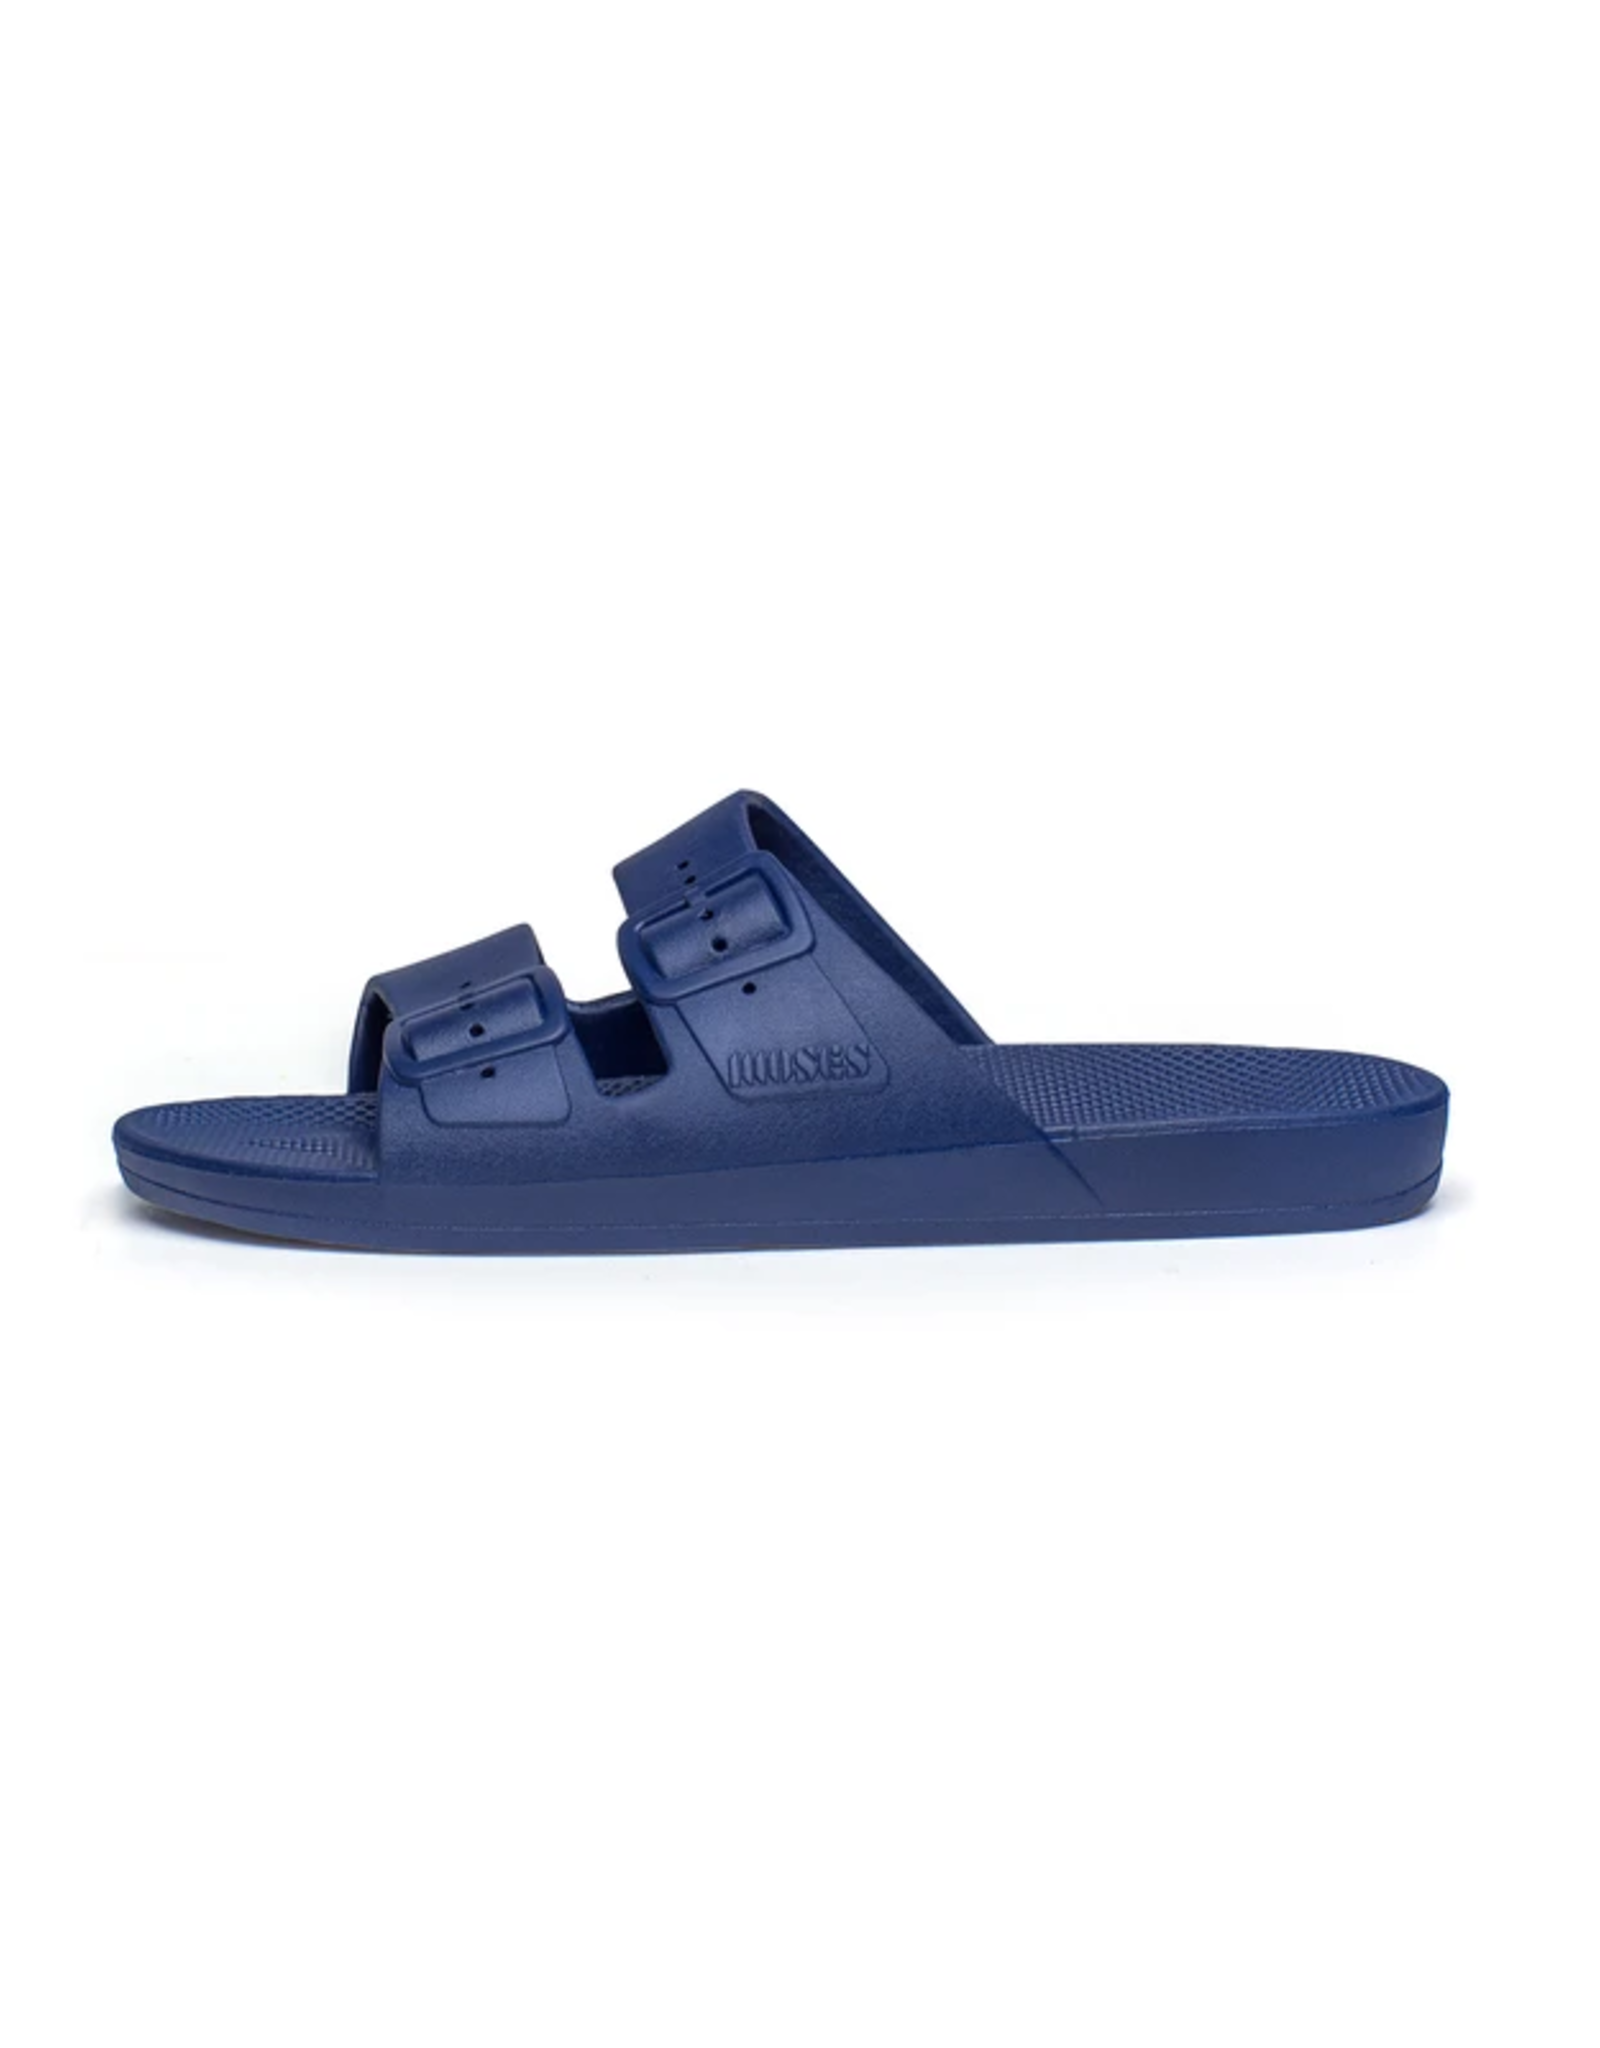 Moses Sandals